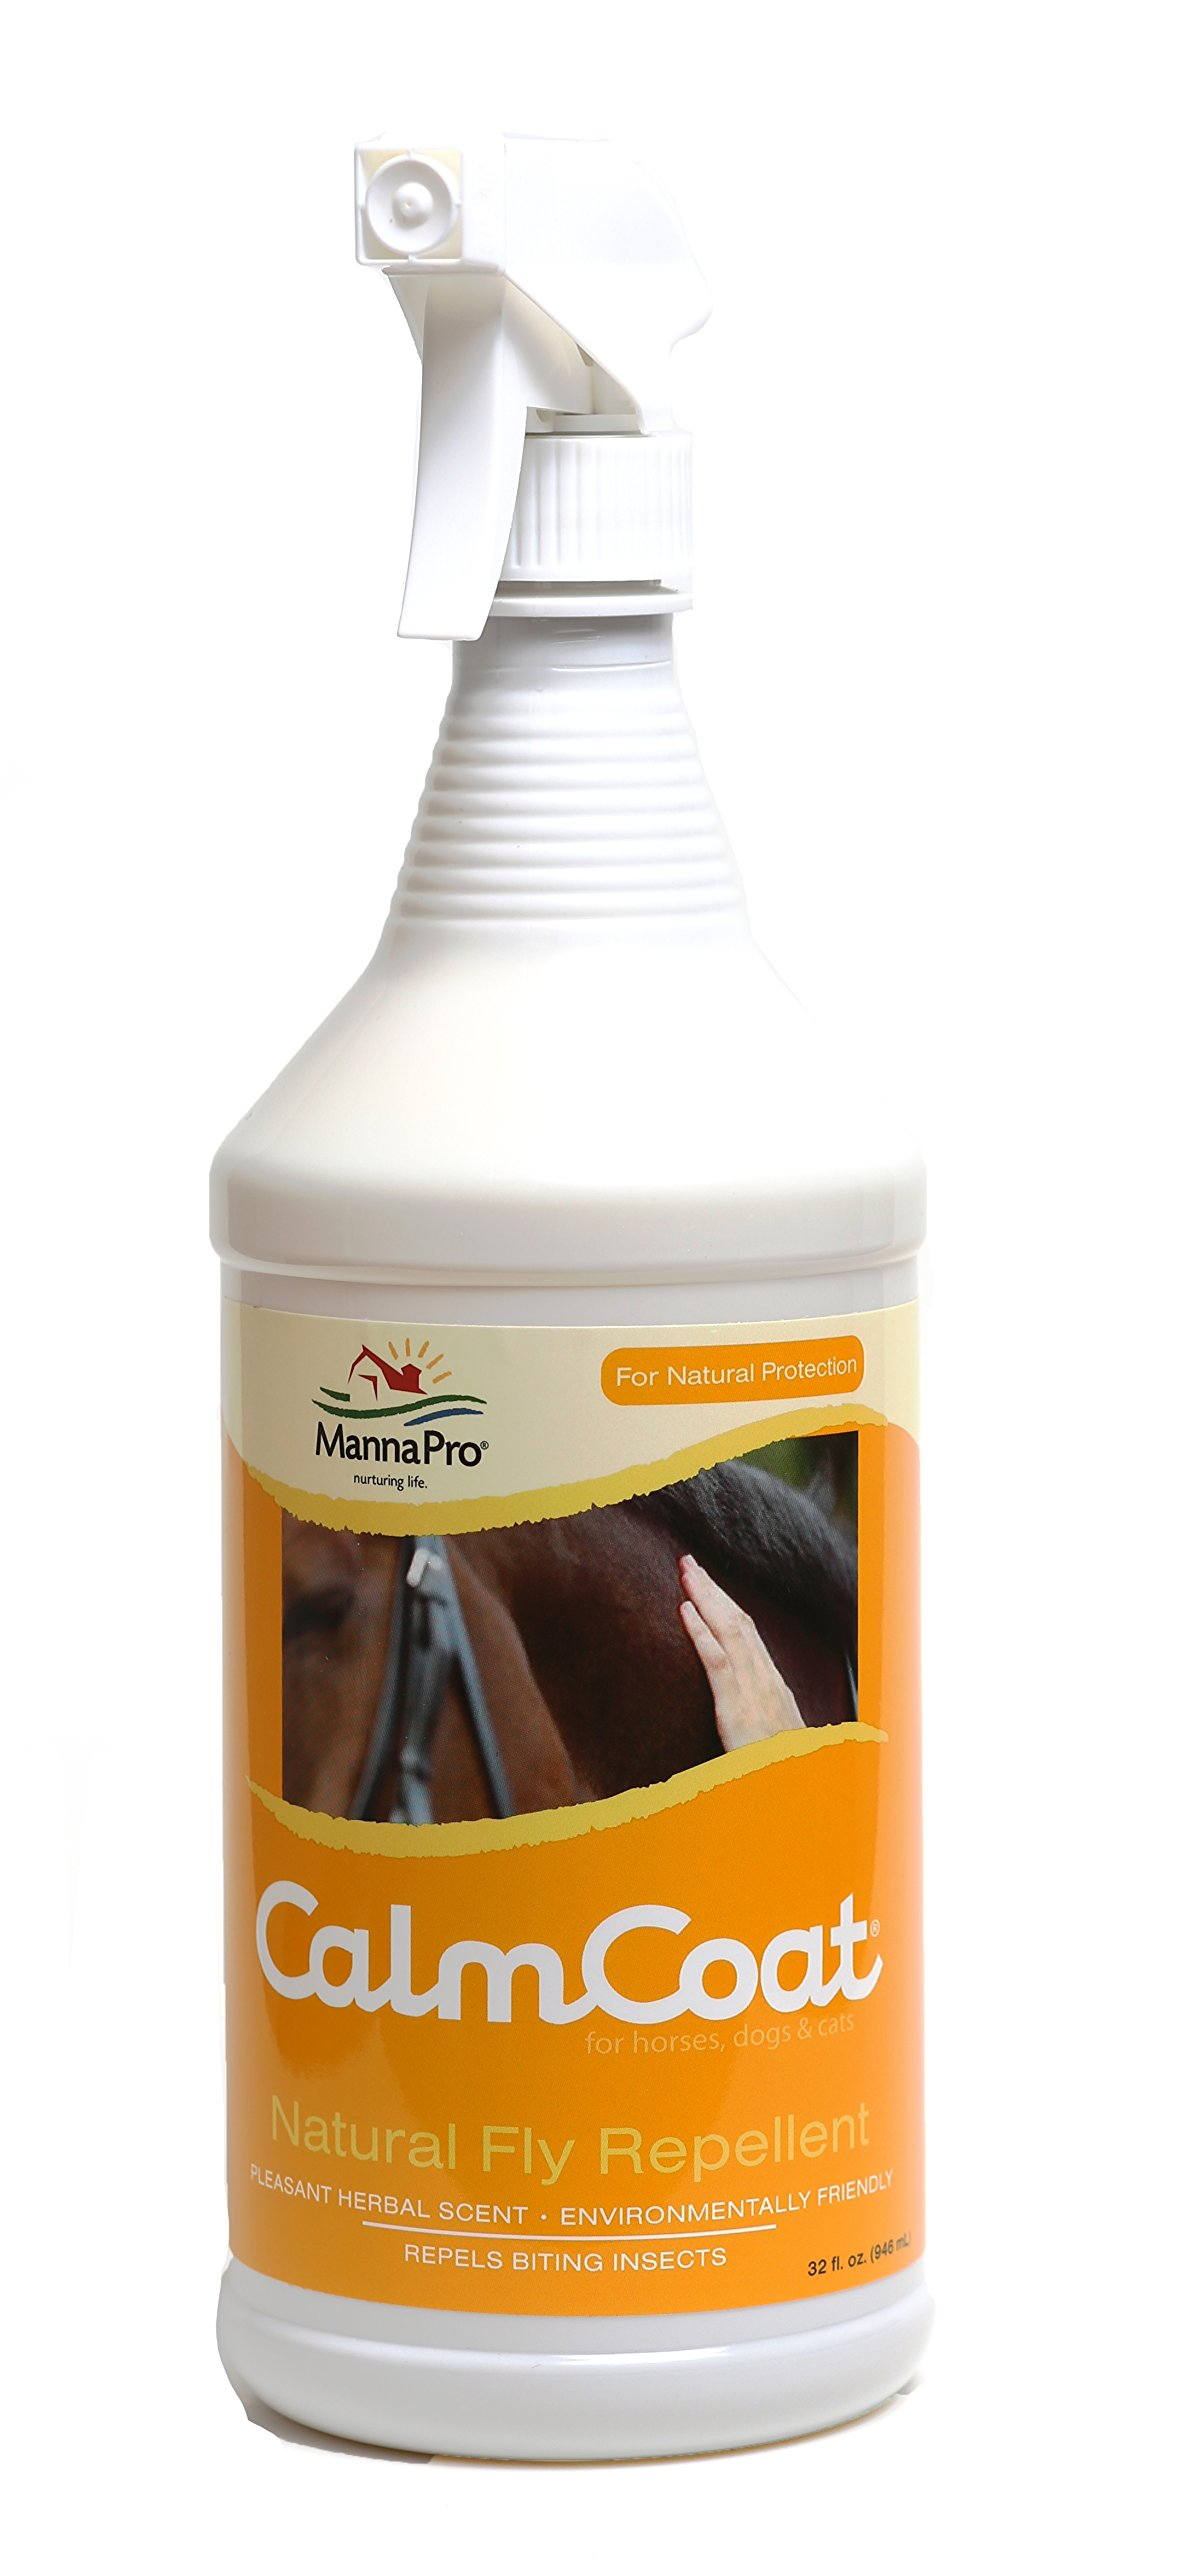 Calm Coat Natural Fly Repellent for Horses Dogs & Cats - Daily Citronella Spray Ointment - Easier Than Masks or Sheets - Mosquito & Insect Control - 32 oz by Calm Coat